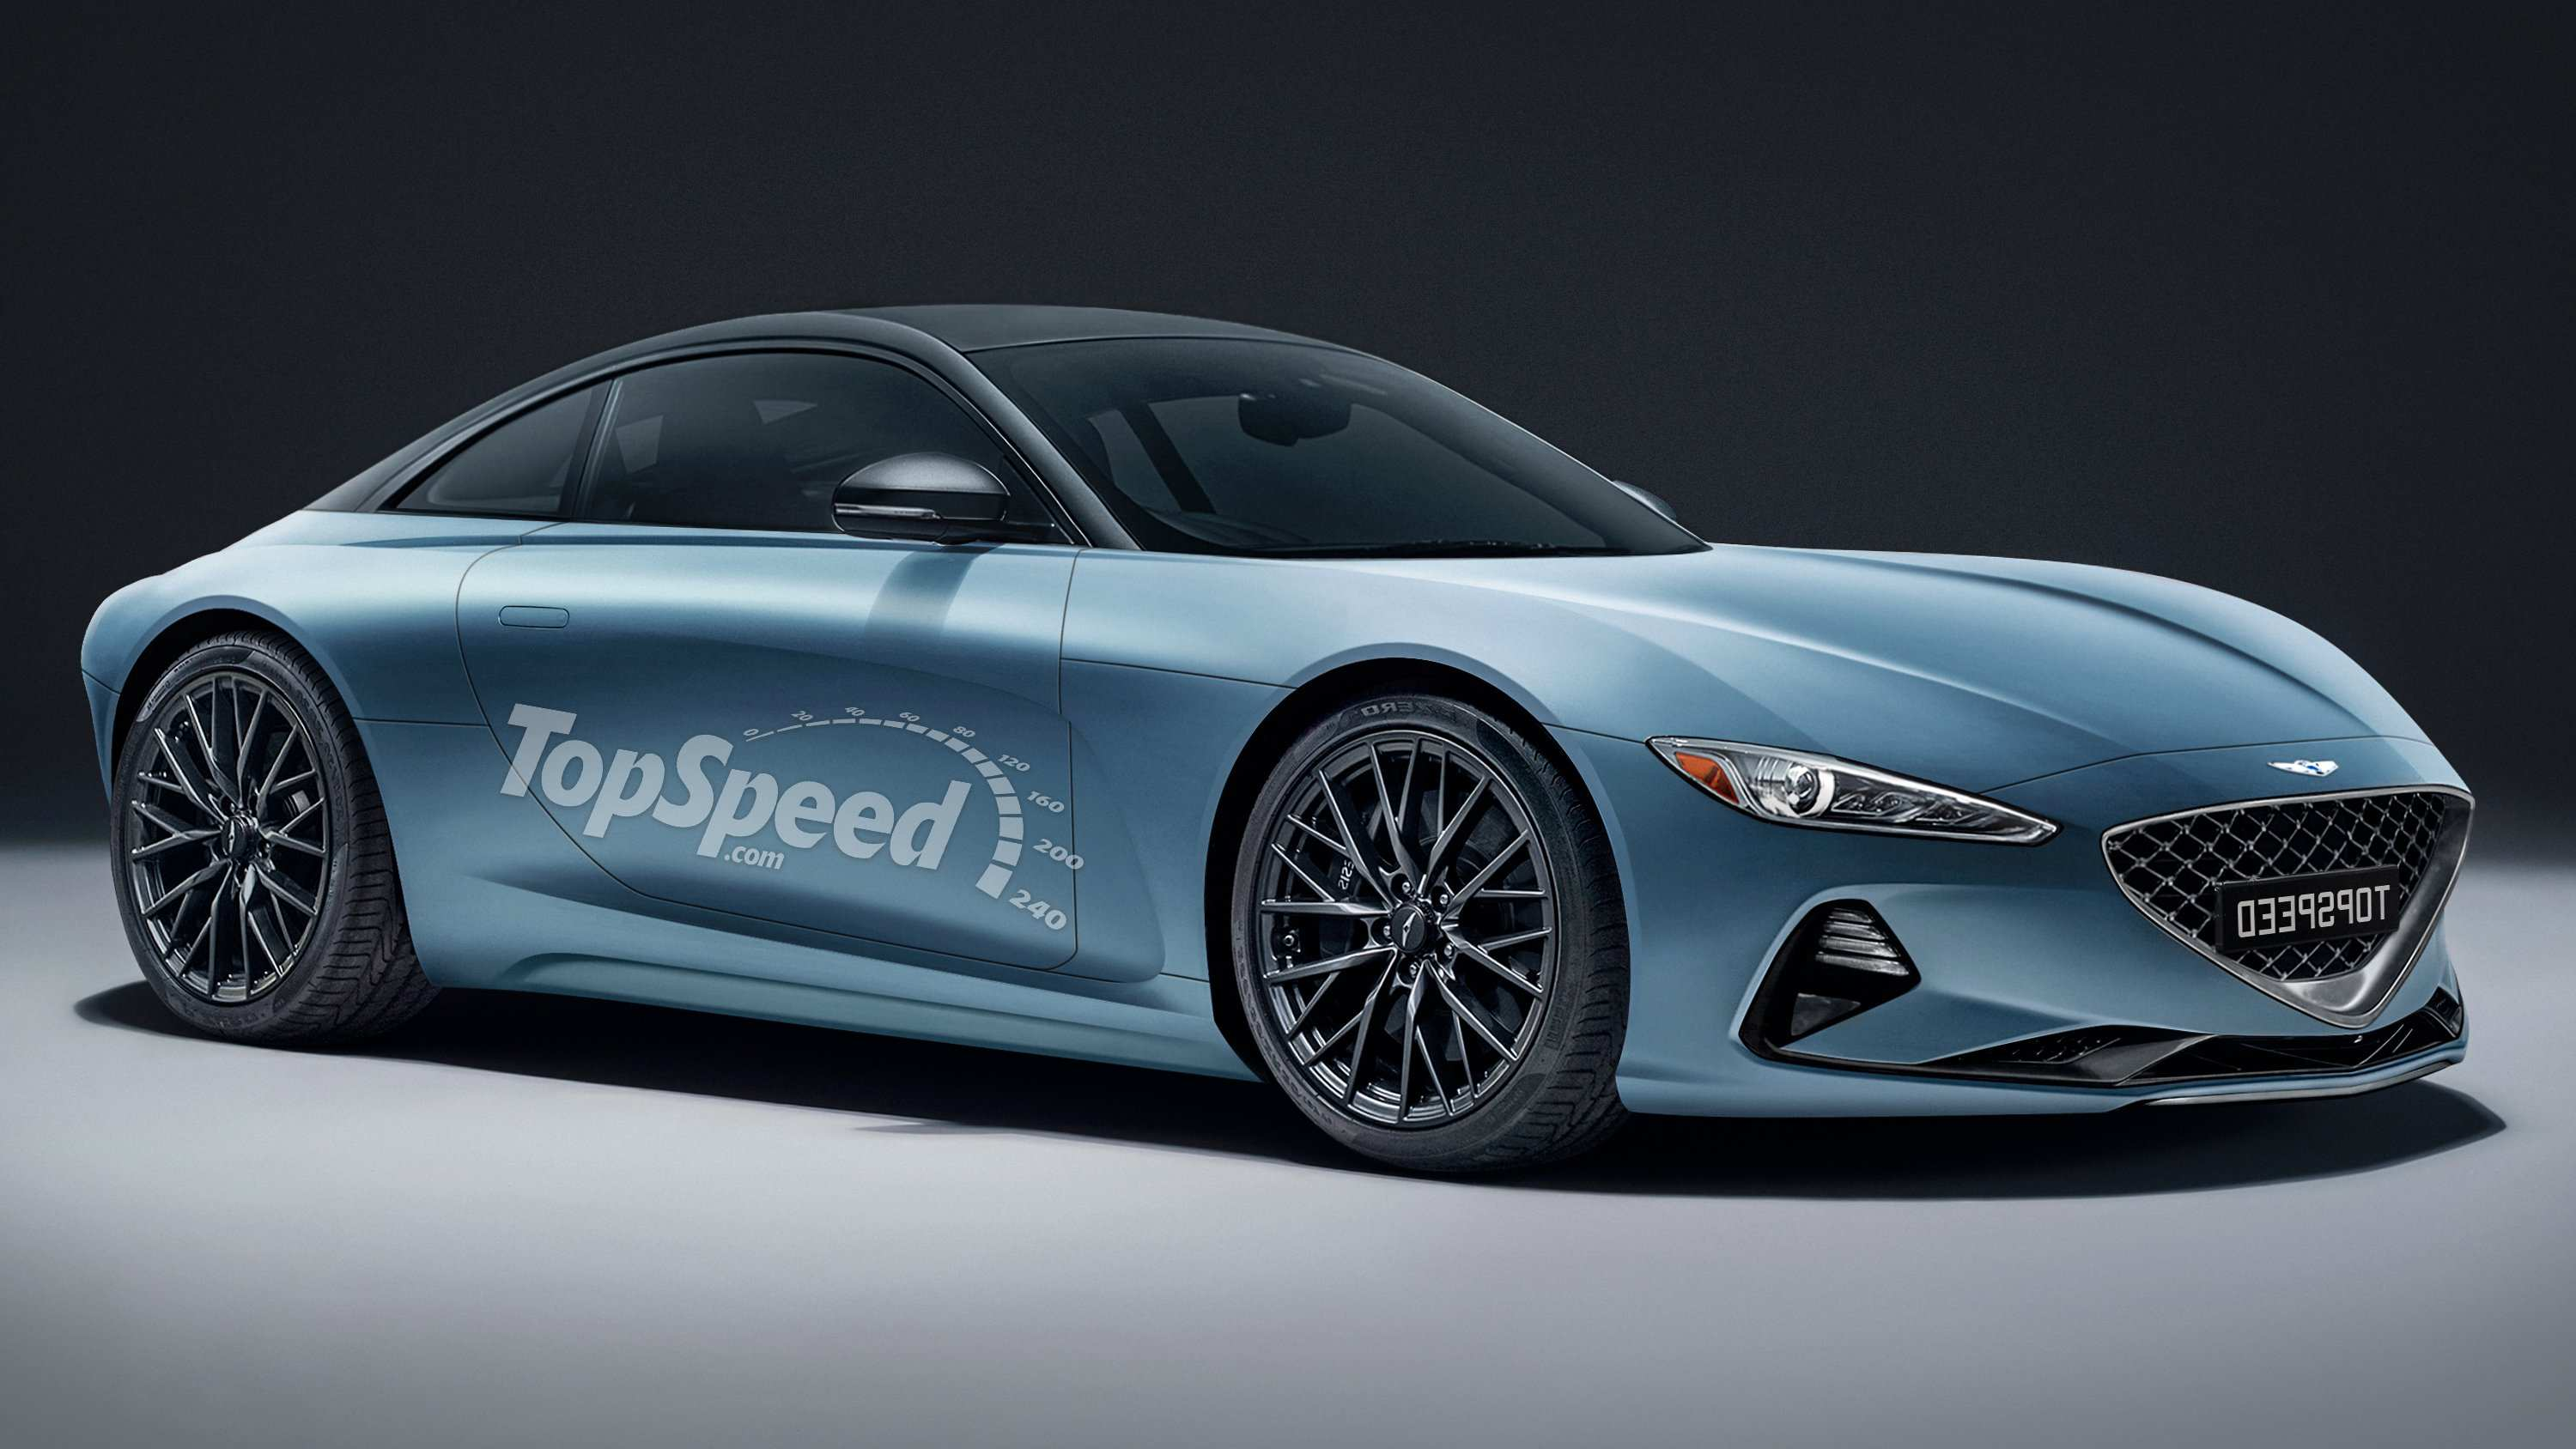 69 The Hyundai Genesis Coupe 2020 Review